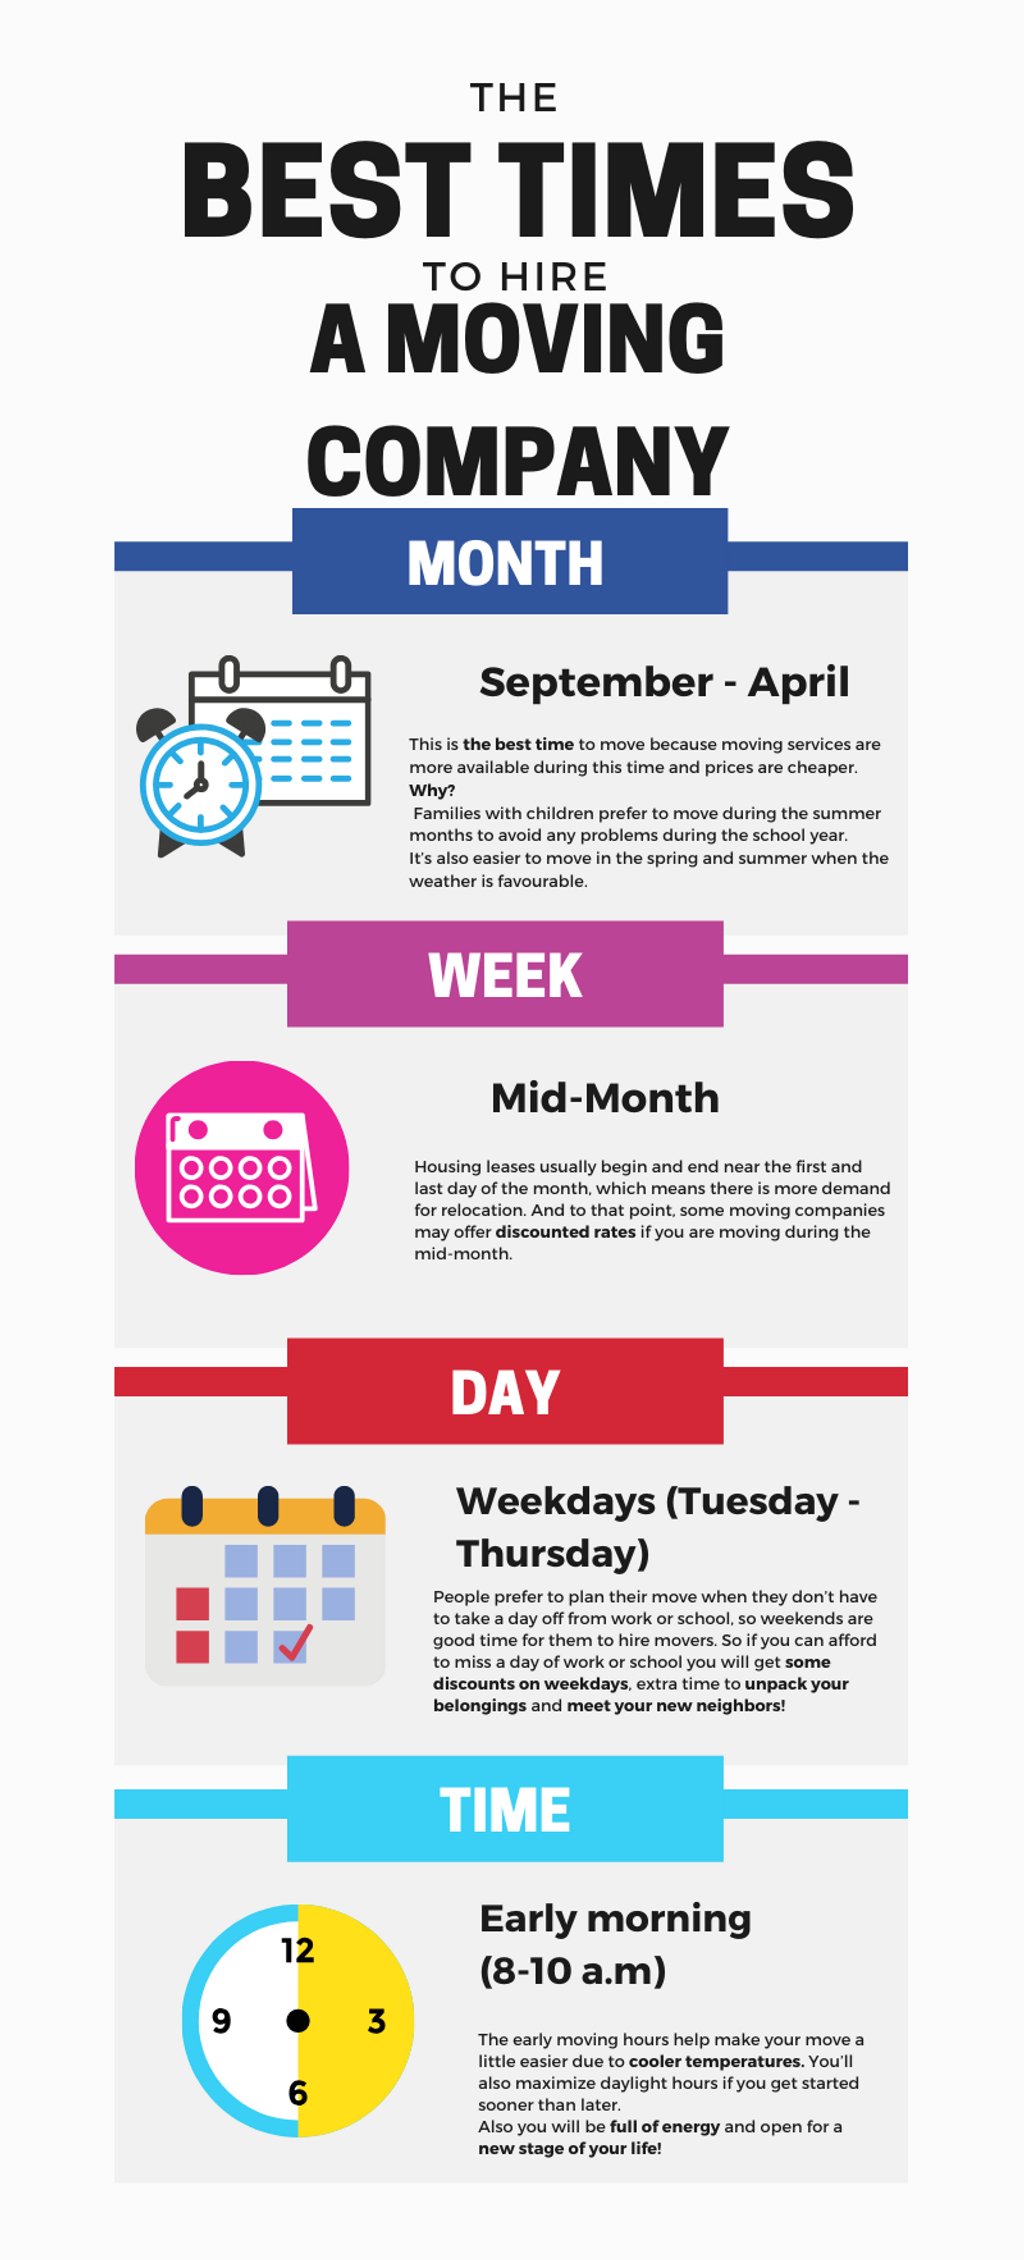 The best time to hire a moving company infographic